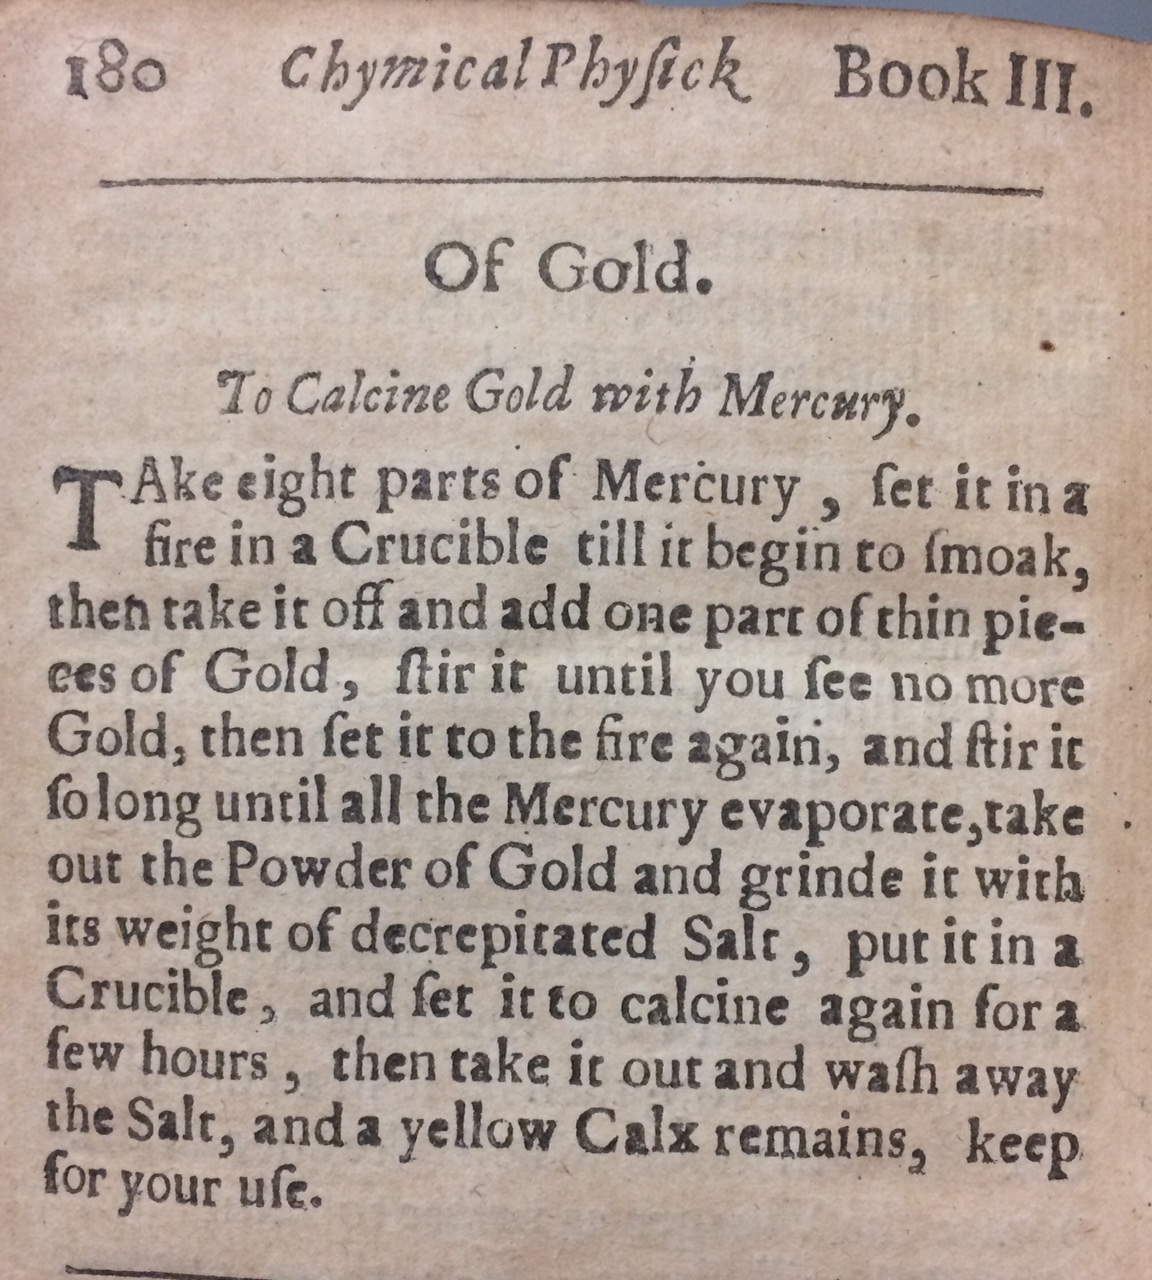 Text entry to Calcine Gold with Mercury.